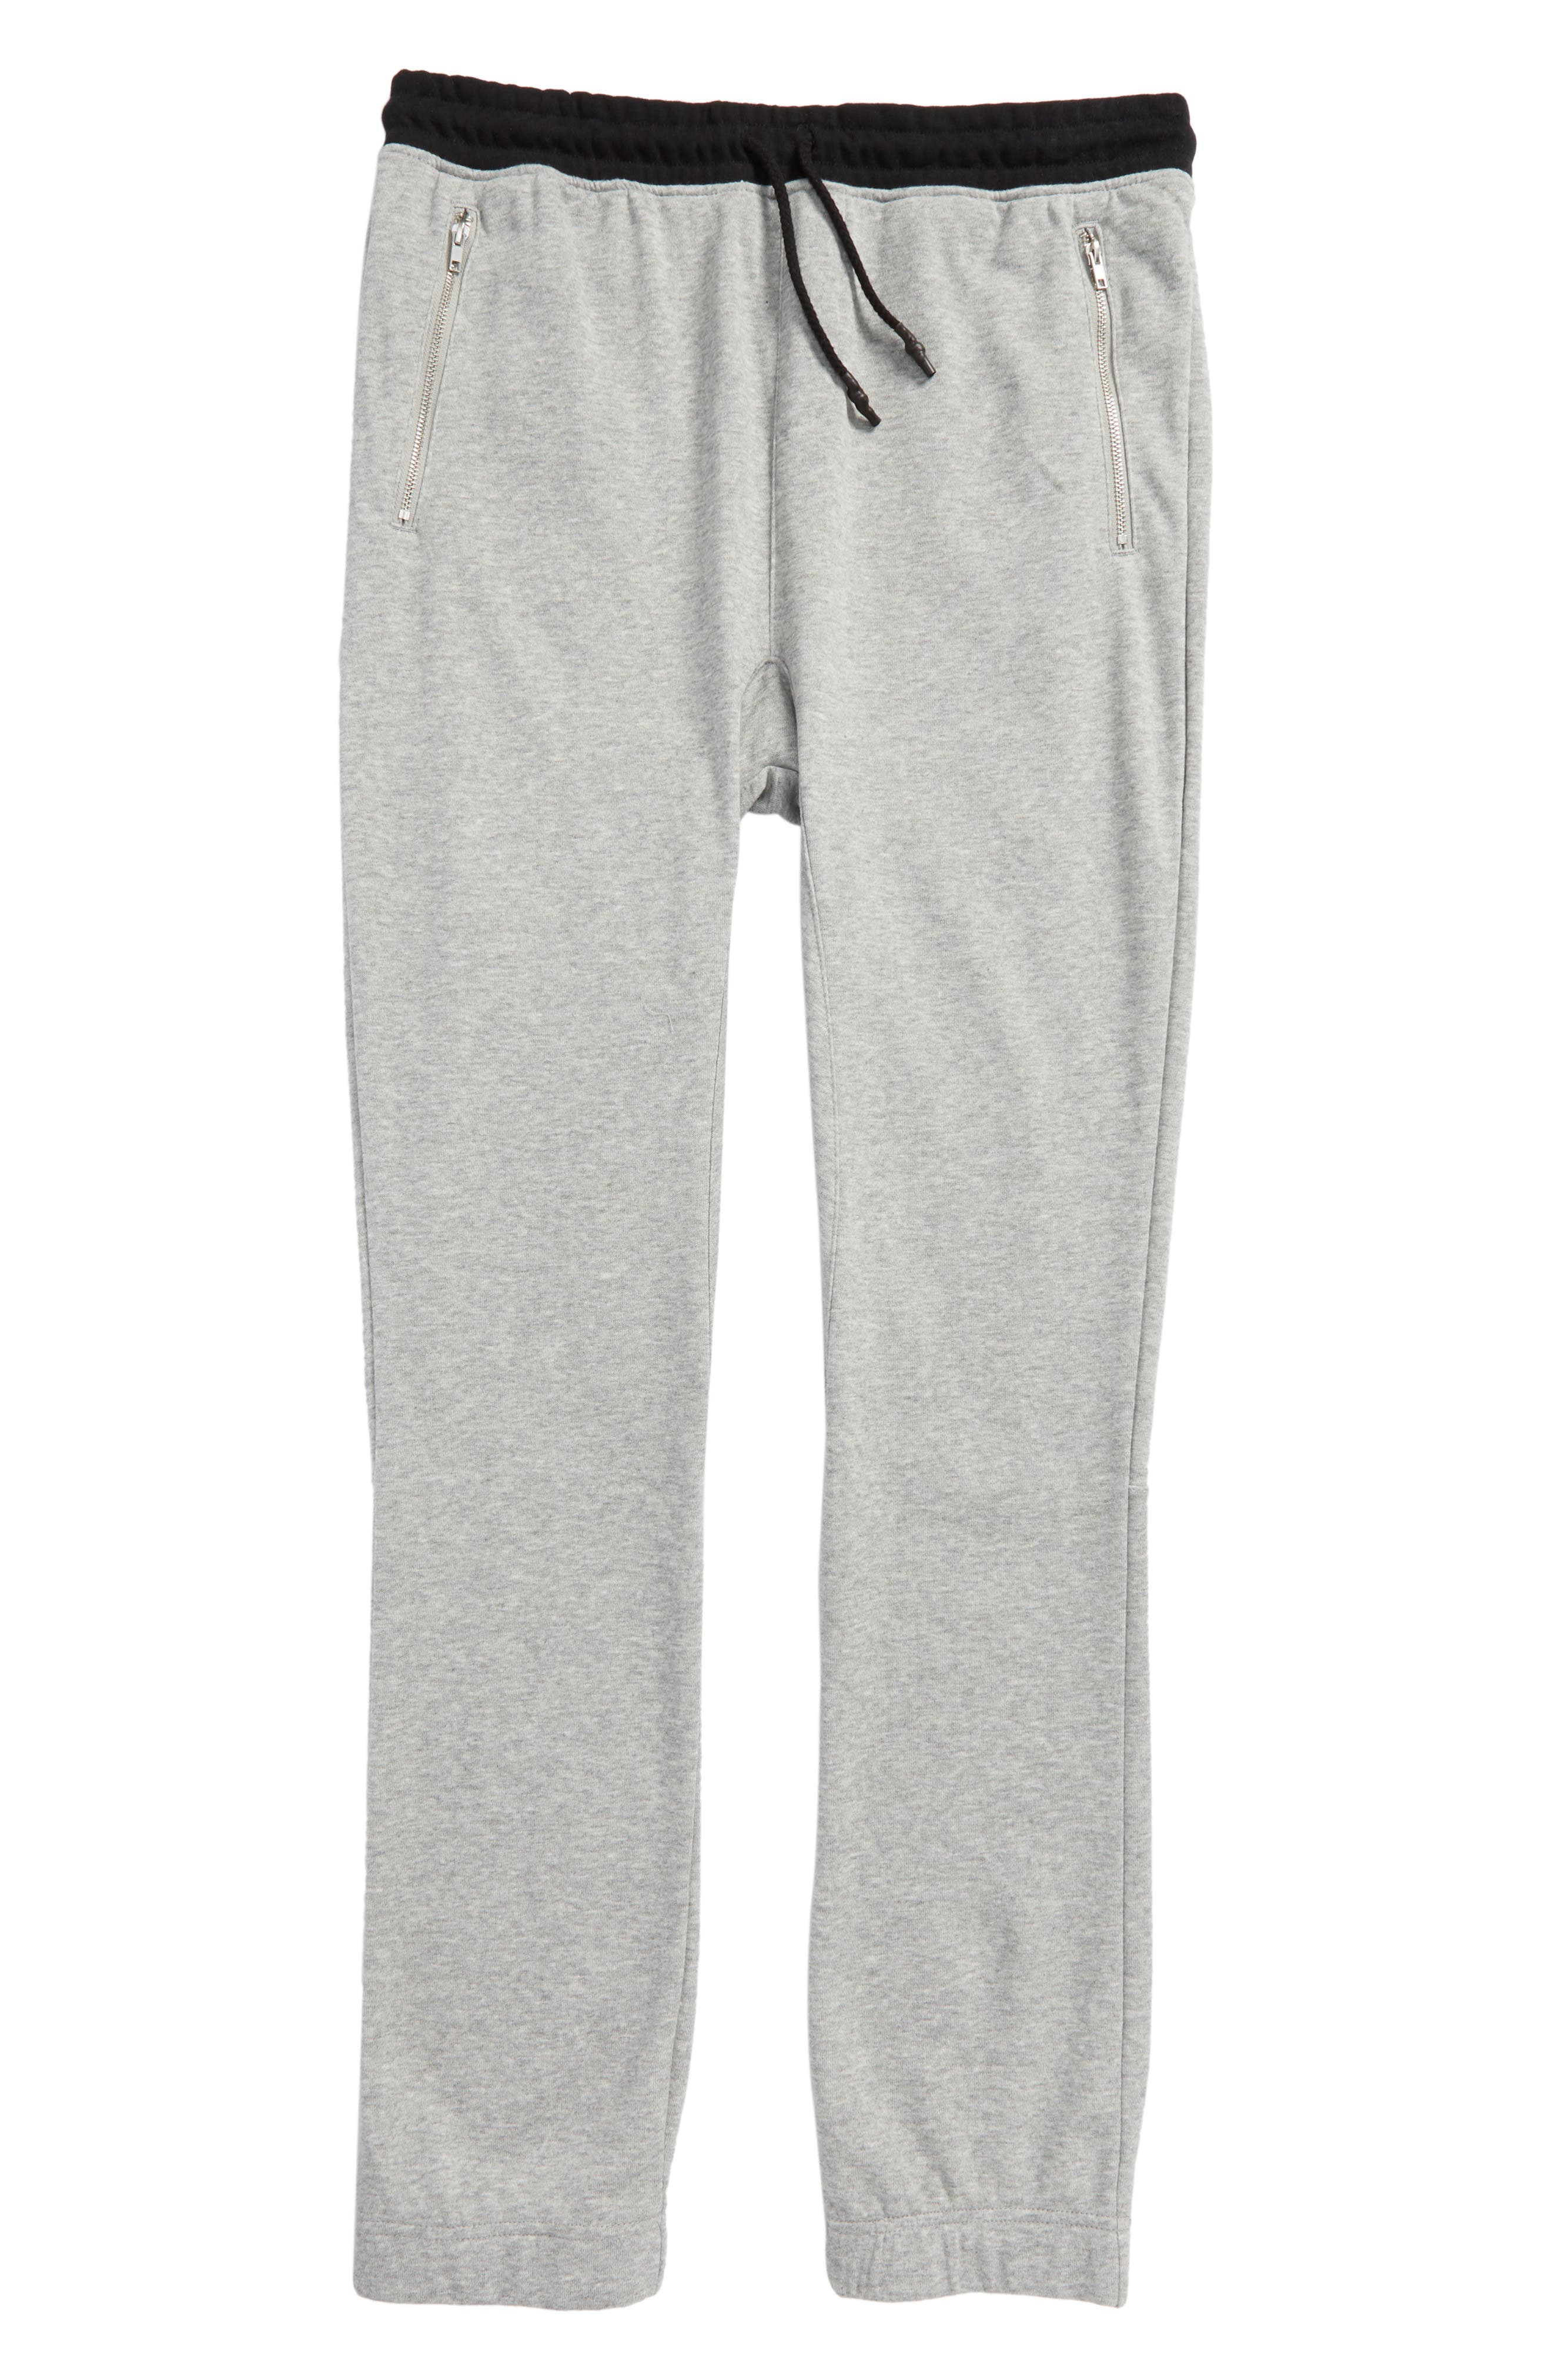 Jogger Pants,                             Main thumbnail 1, color,                             030